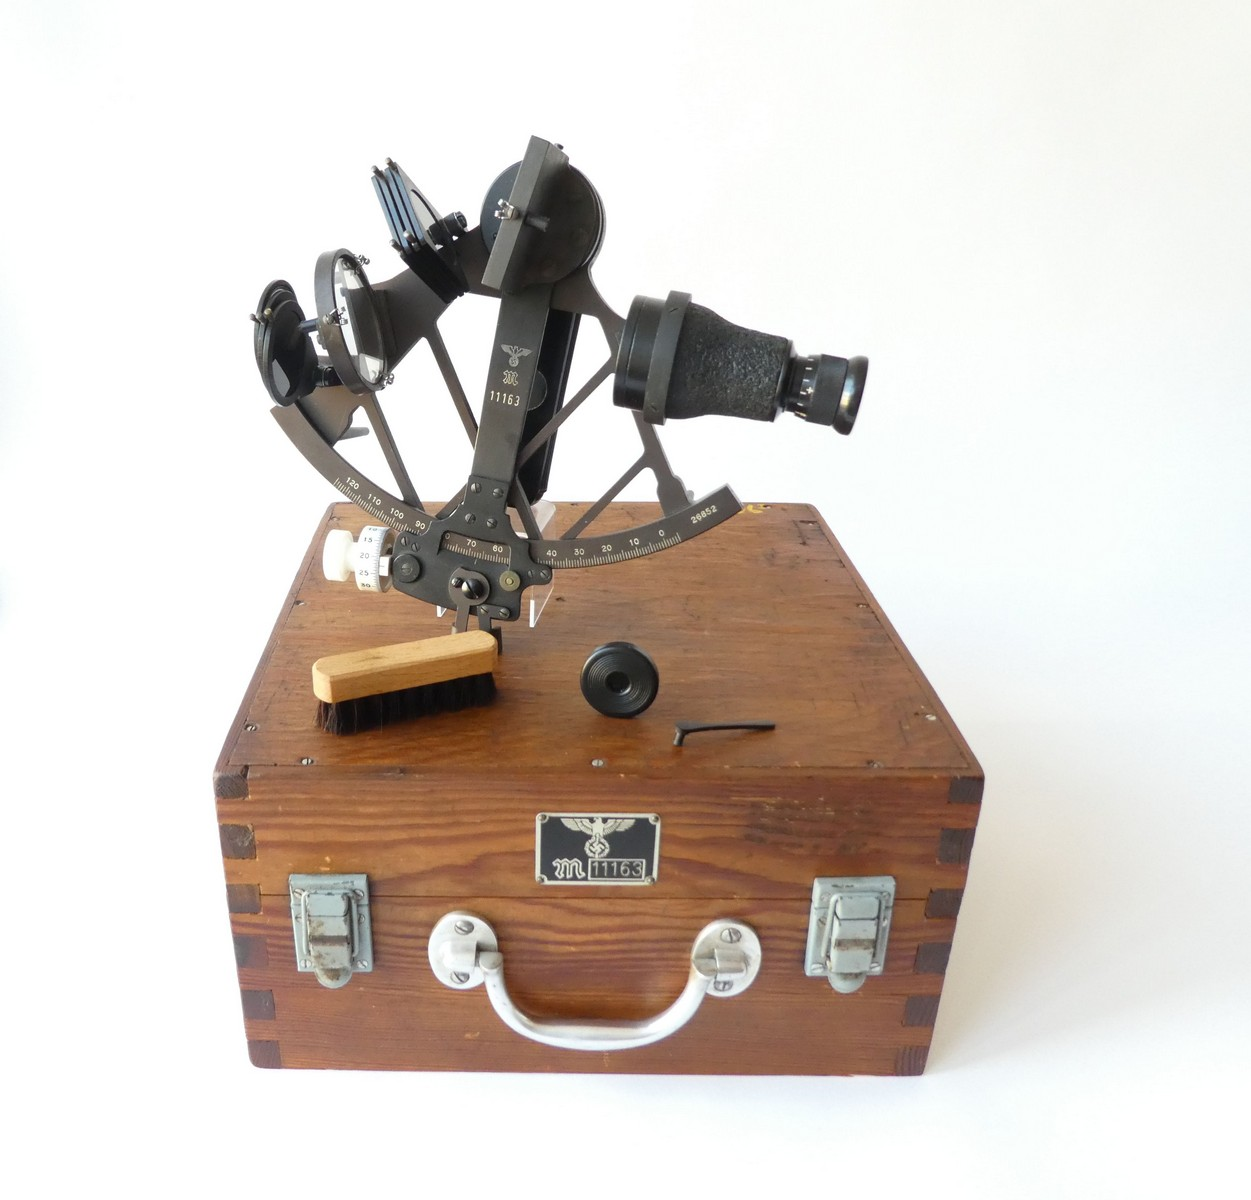 KRIEGSMARINE SEXTANT BY PLATH HAMBURG 1943/45